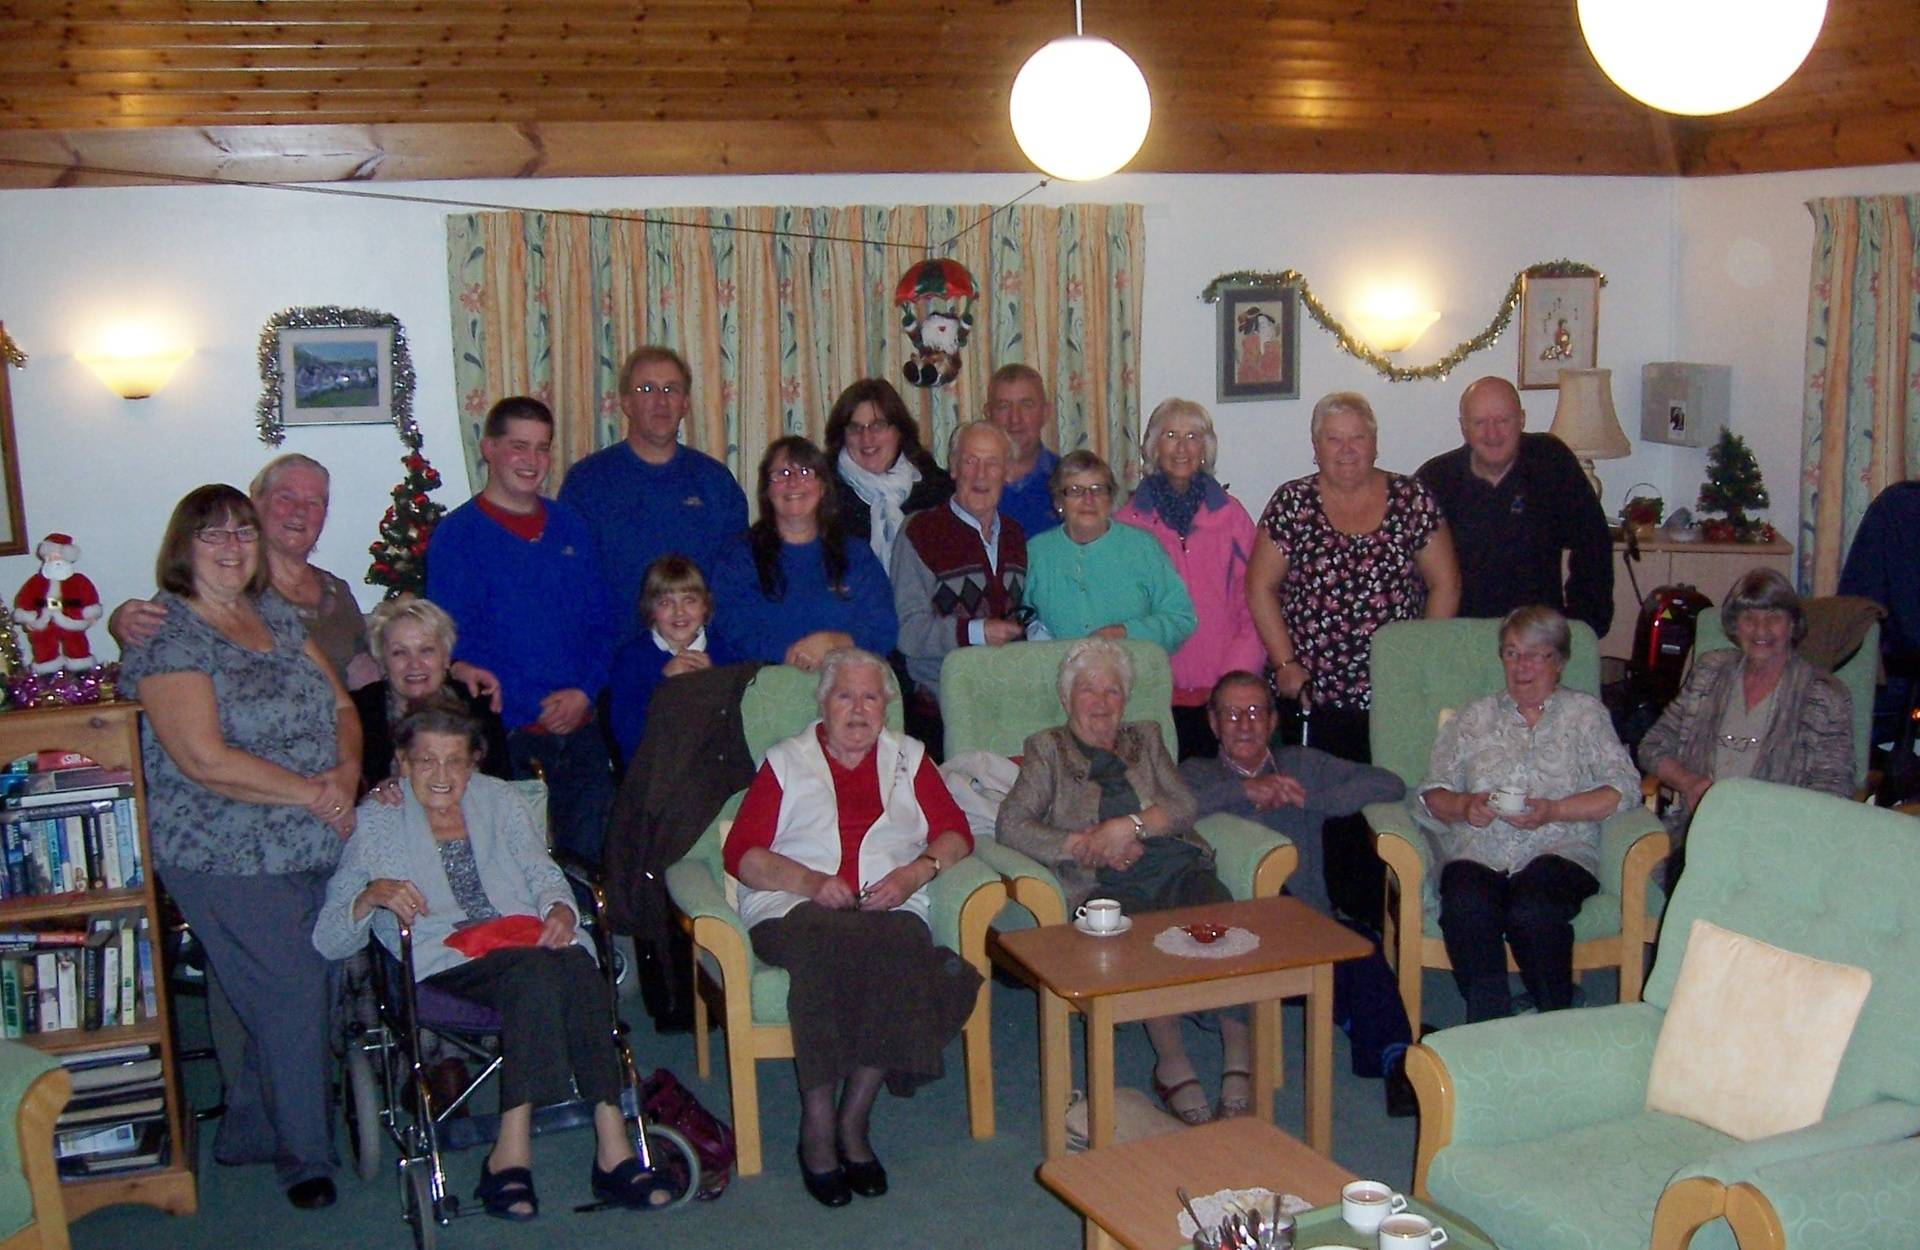 Carols with the residents of Ceres Court